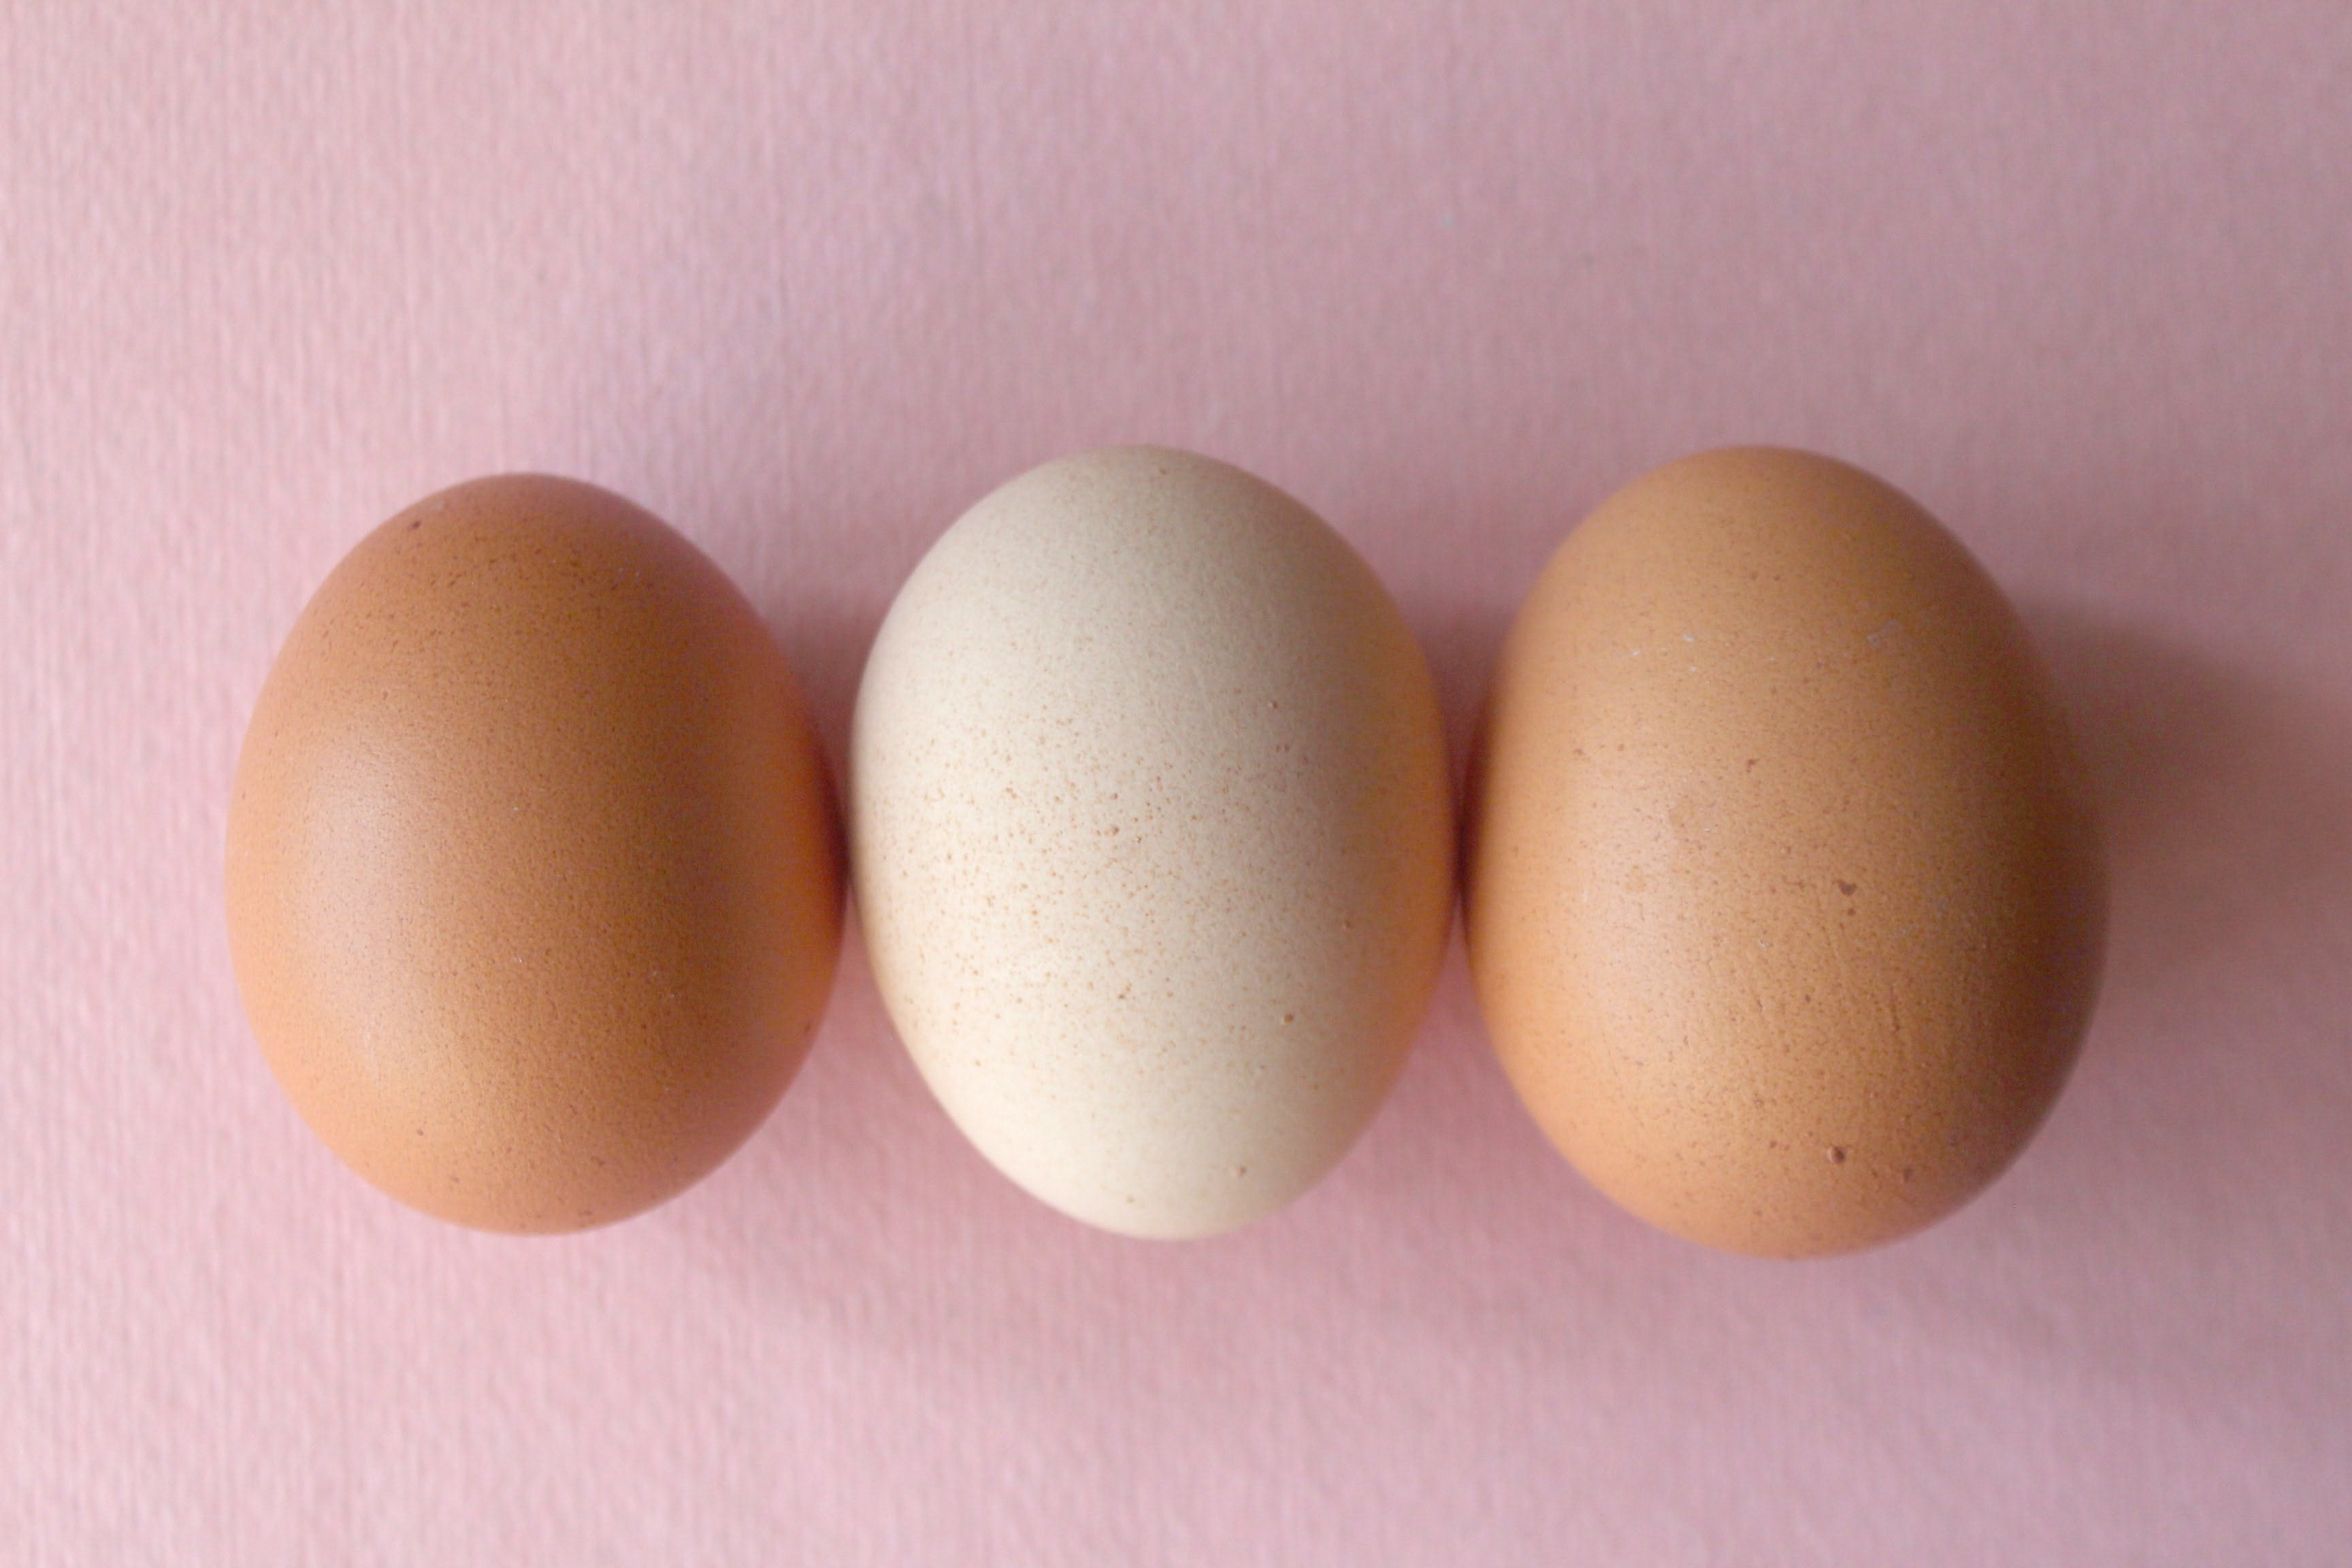 wellness-can-dogs-eat-raw-eggs-hero-image